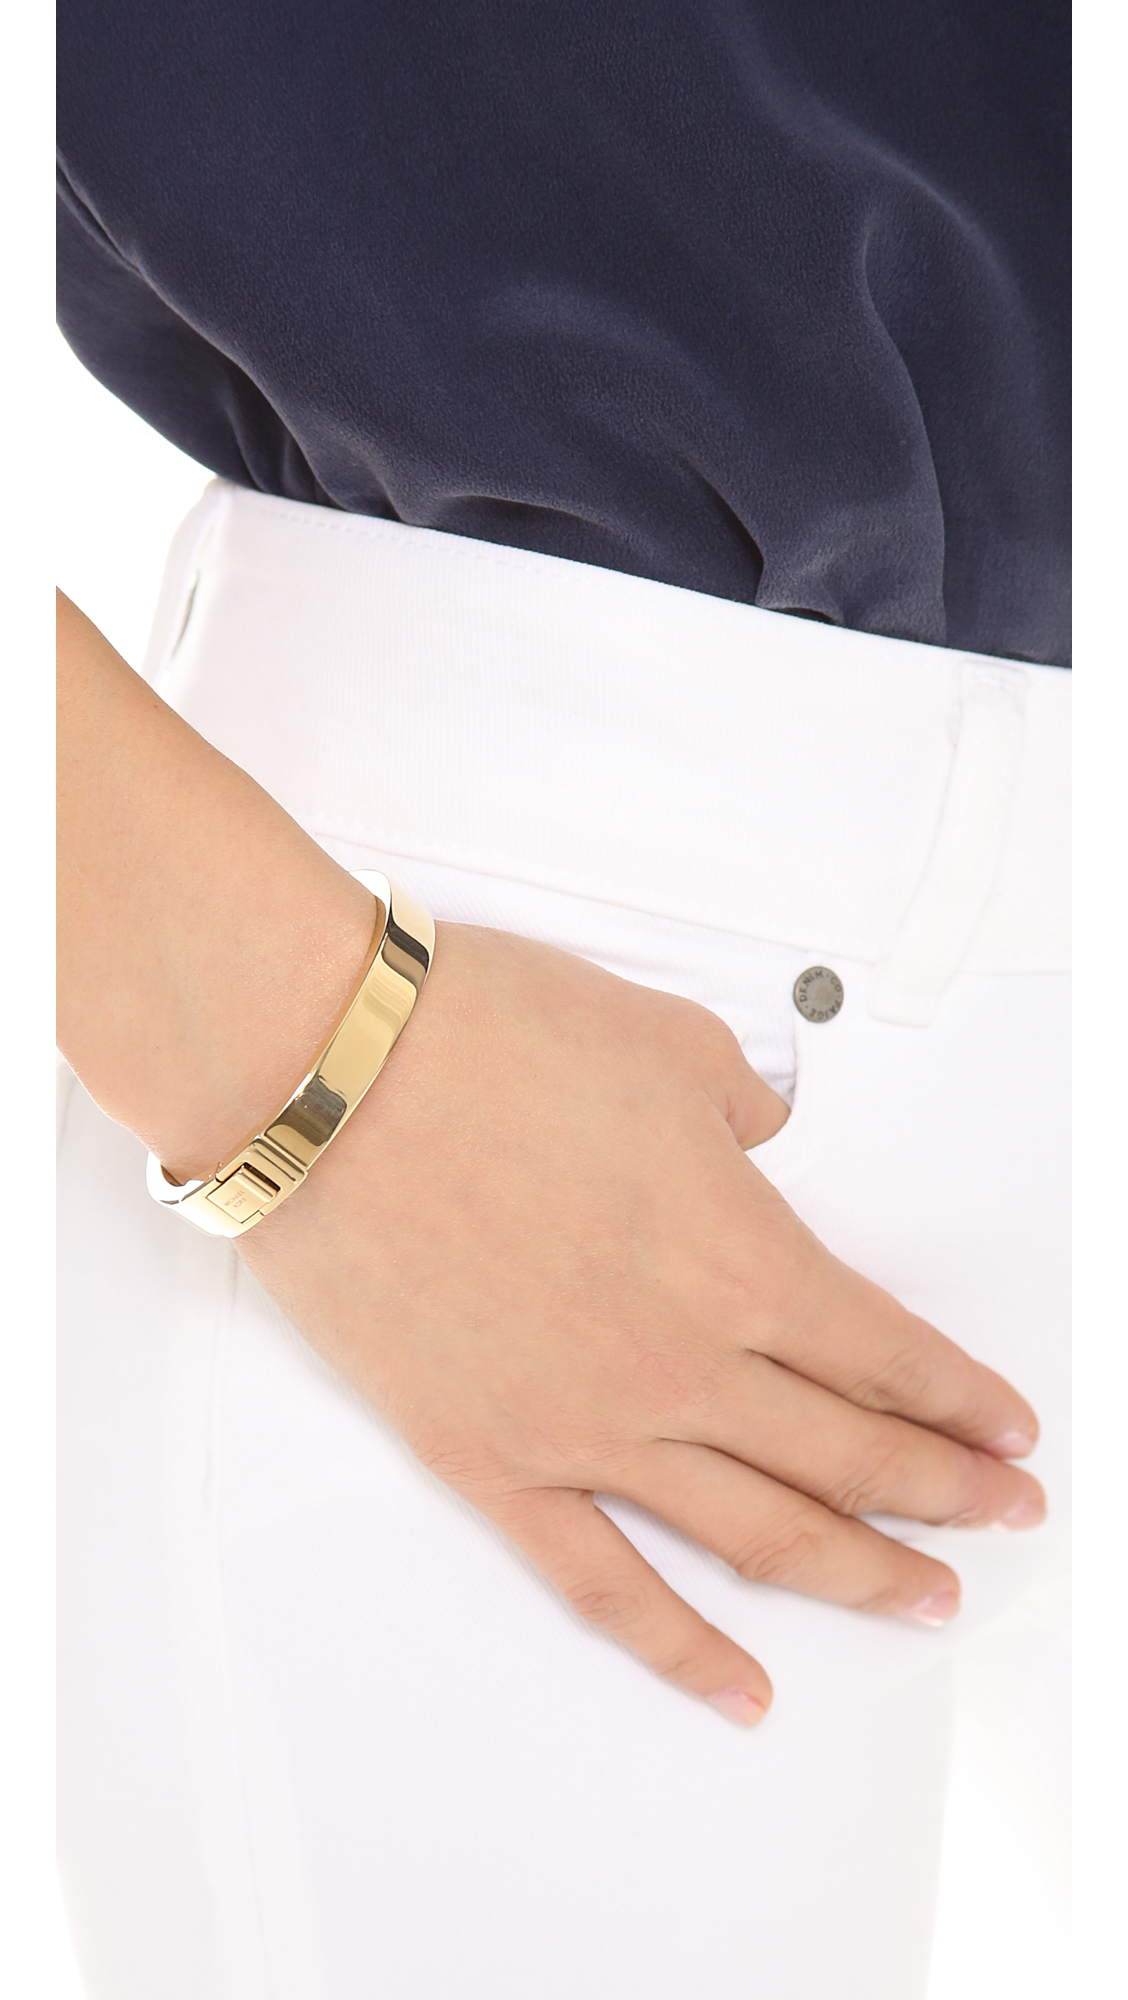 fpx gold op s layer comp hinged bracelet sailor sharpen knot bangles bloomingdale resmode product spade york shop bangle kate new wid sailors tif usm pdpimgshortdescription qlt hinge